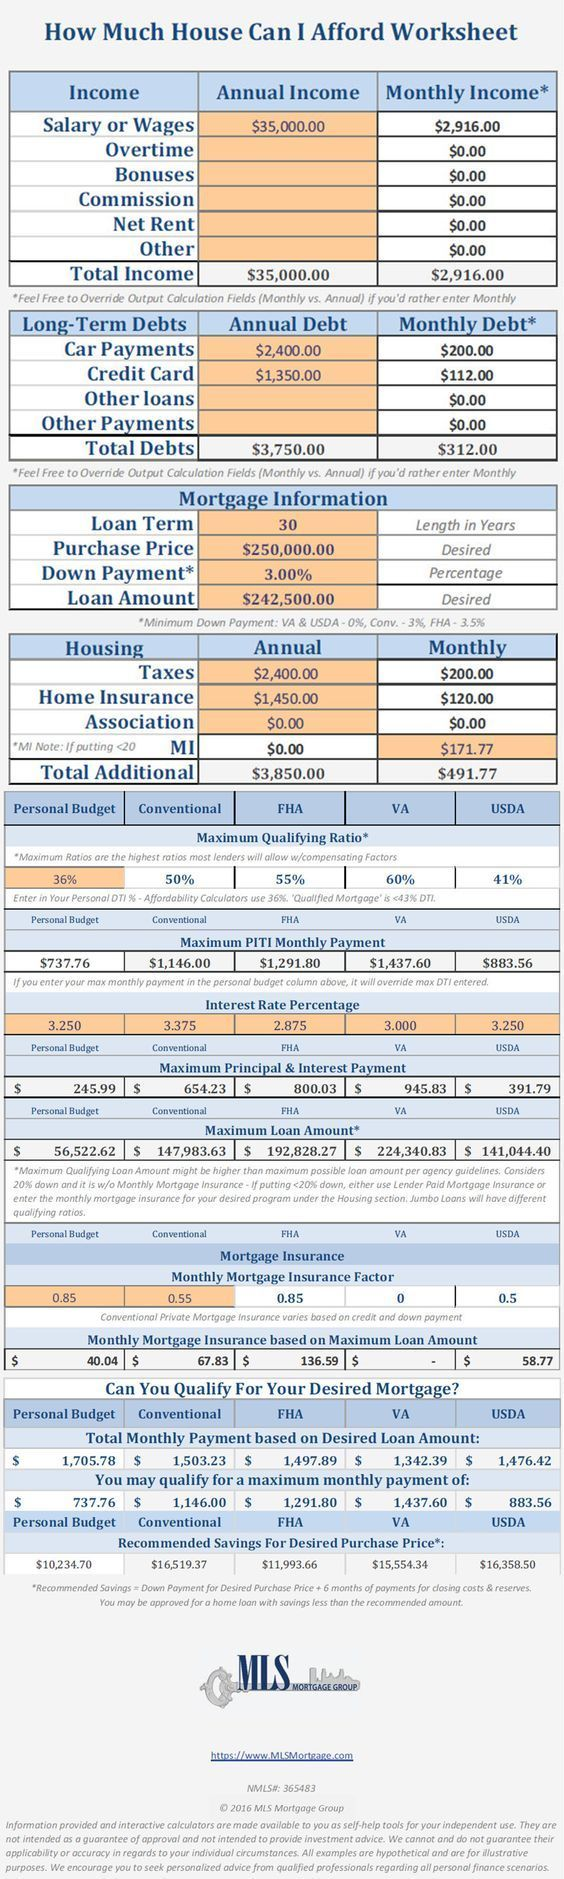 Worksheets Fha Streamline Refinance Calculator Worksheet best 25 compare mortgages ideas on pinterest go life insurance voter search and scotia insurance